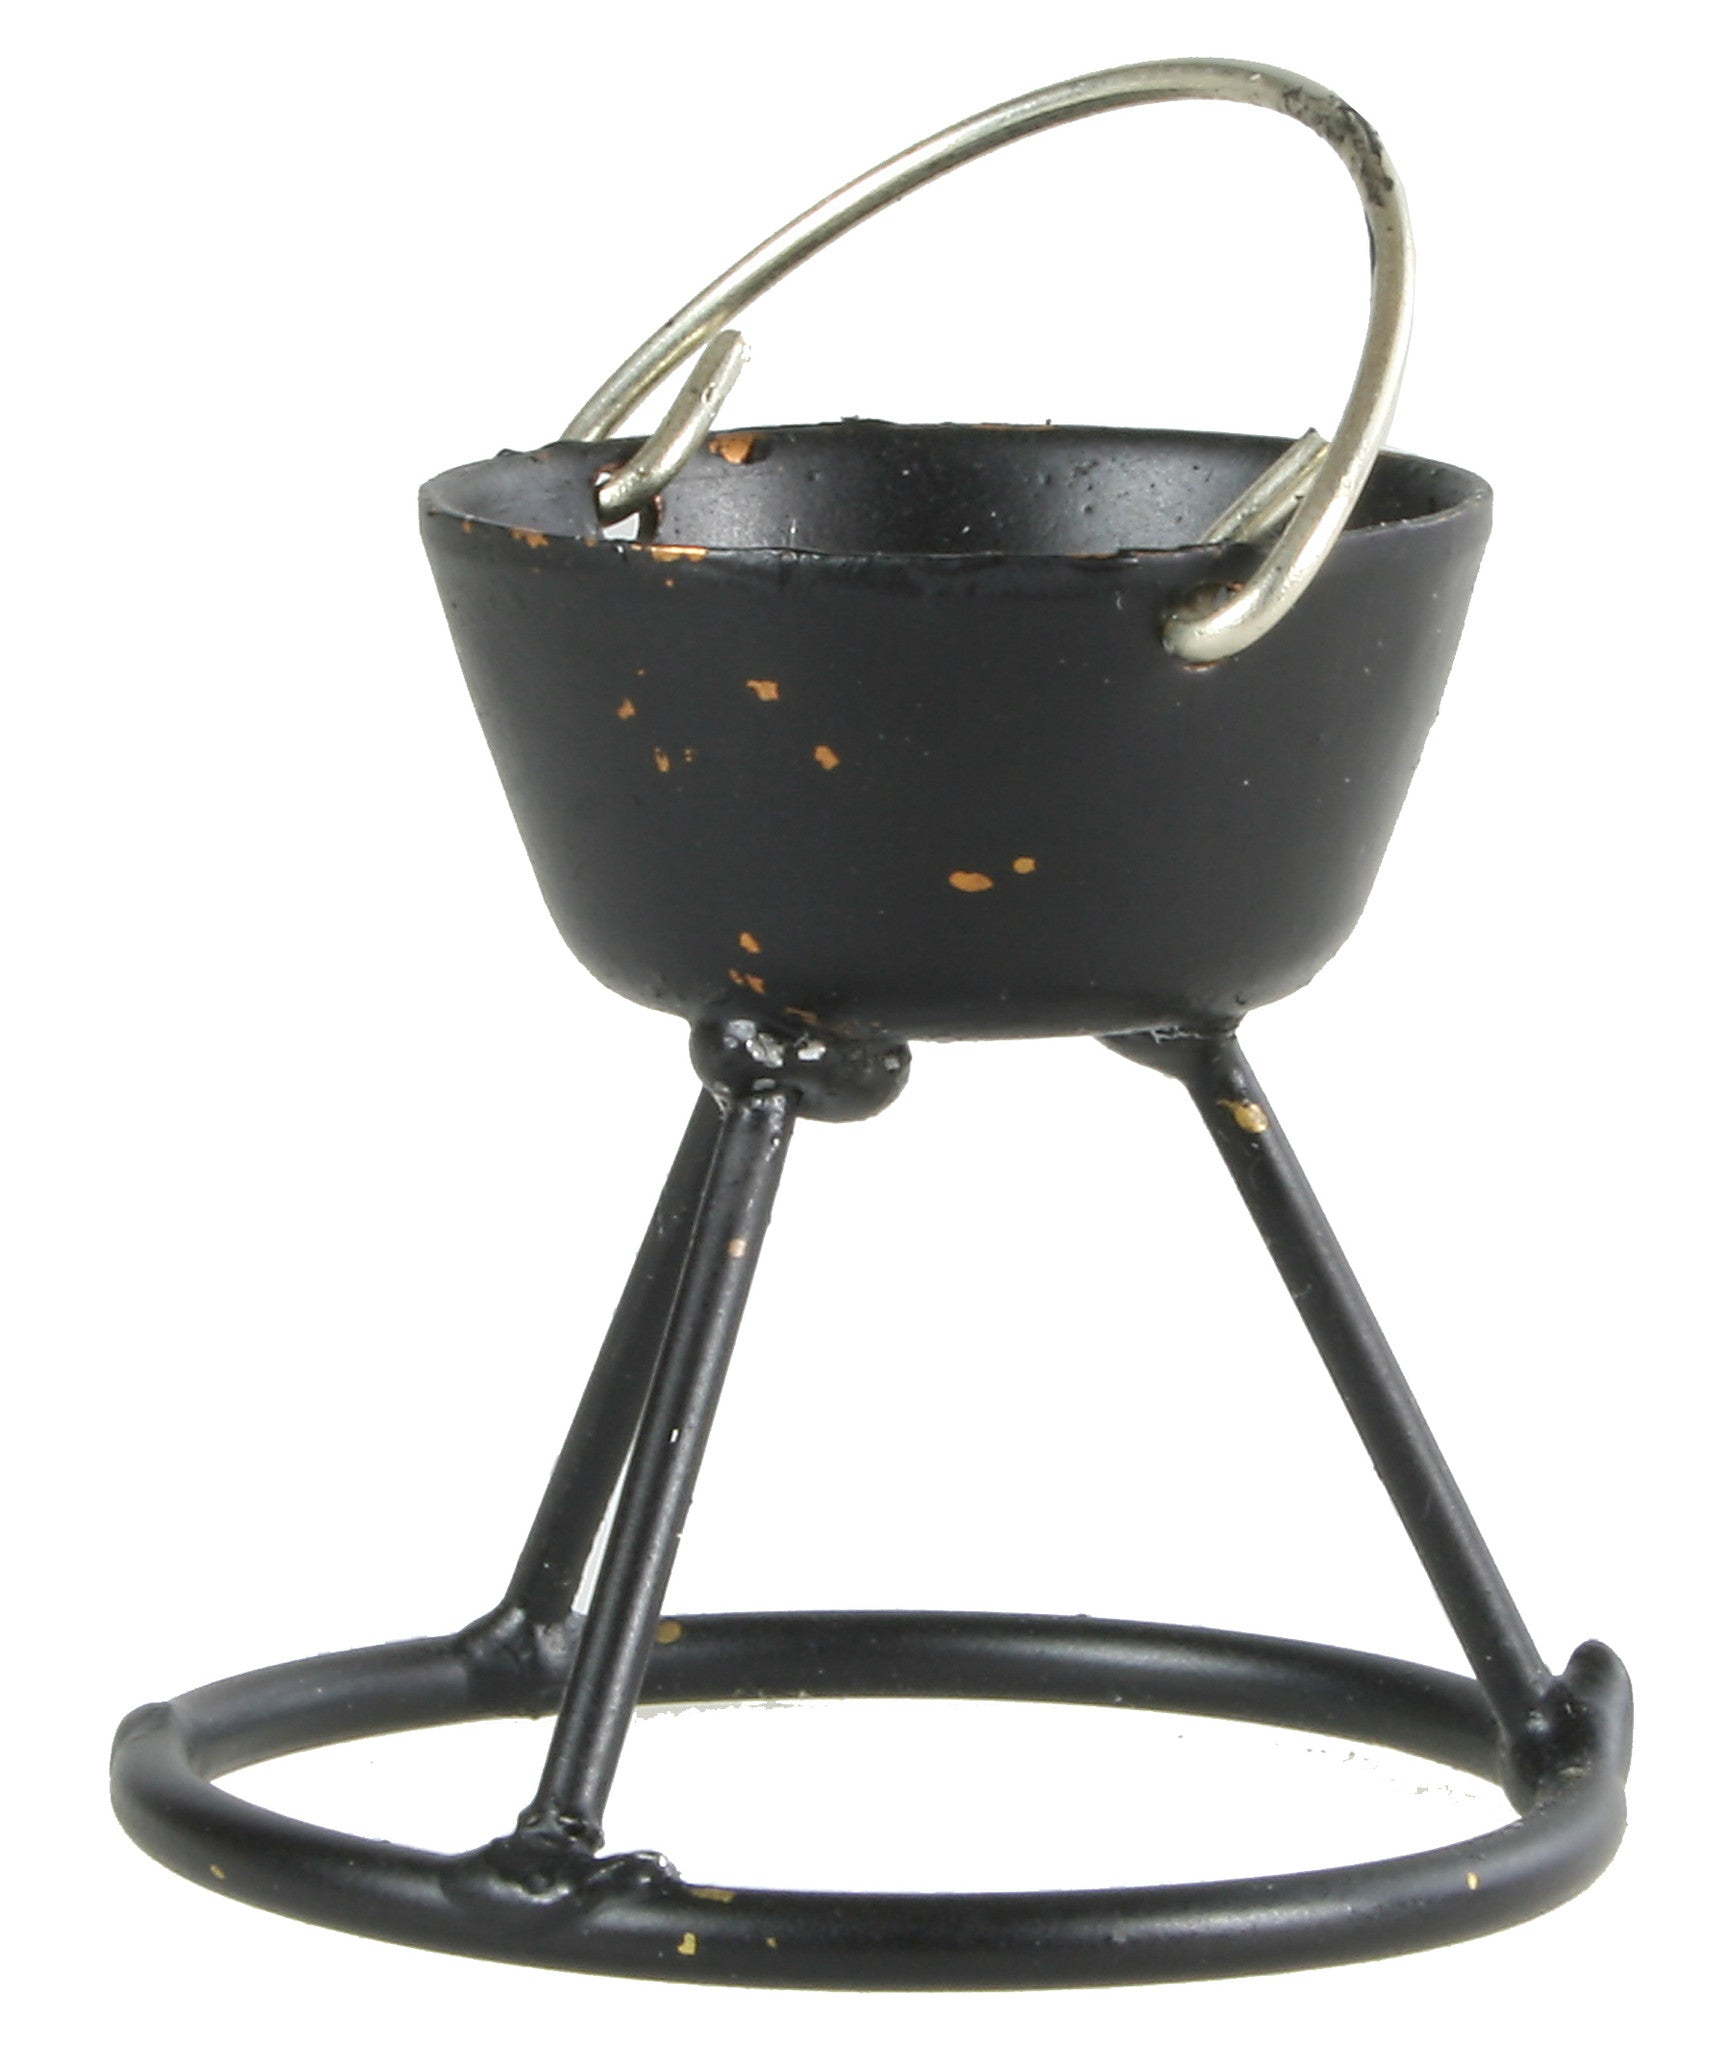 "Open Fire Cooking Pot on stand - 1-1/8"" tall"